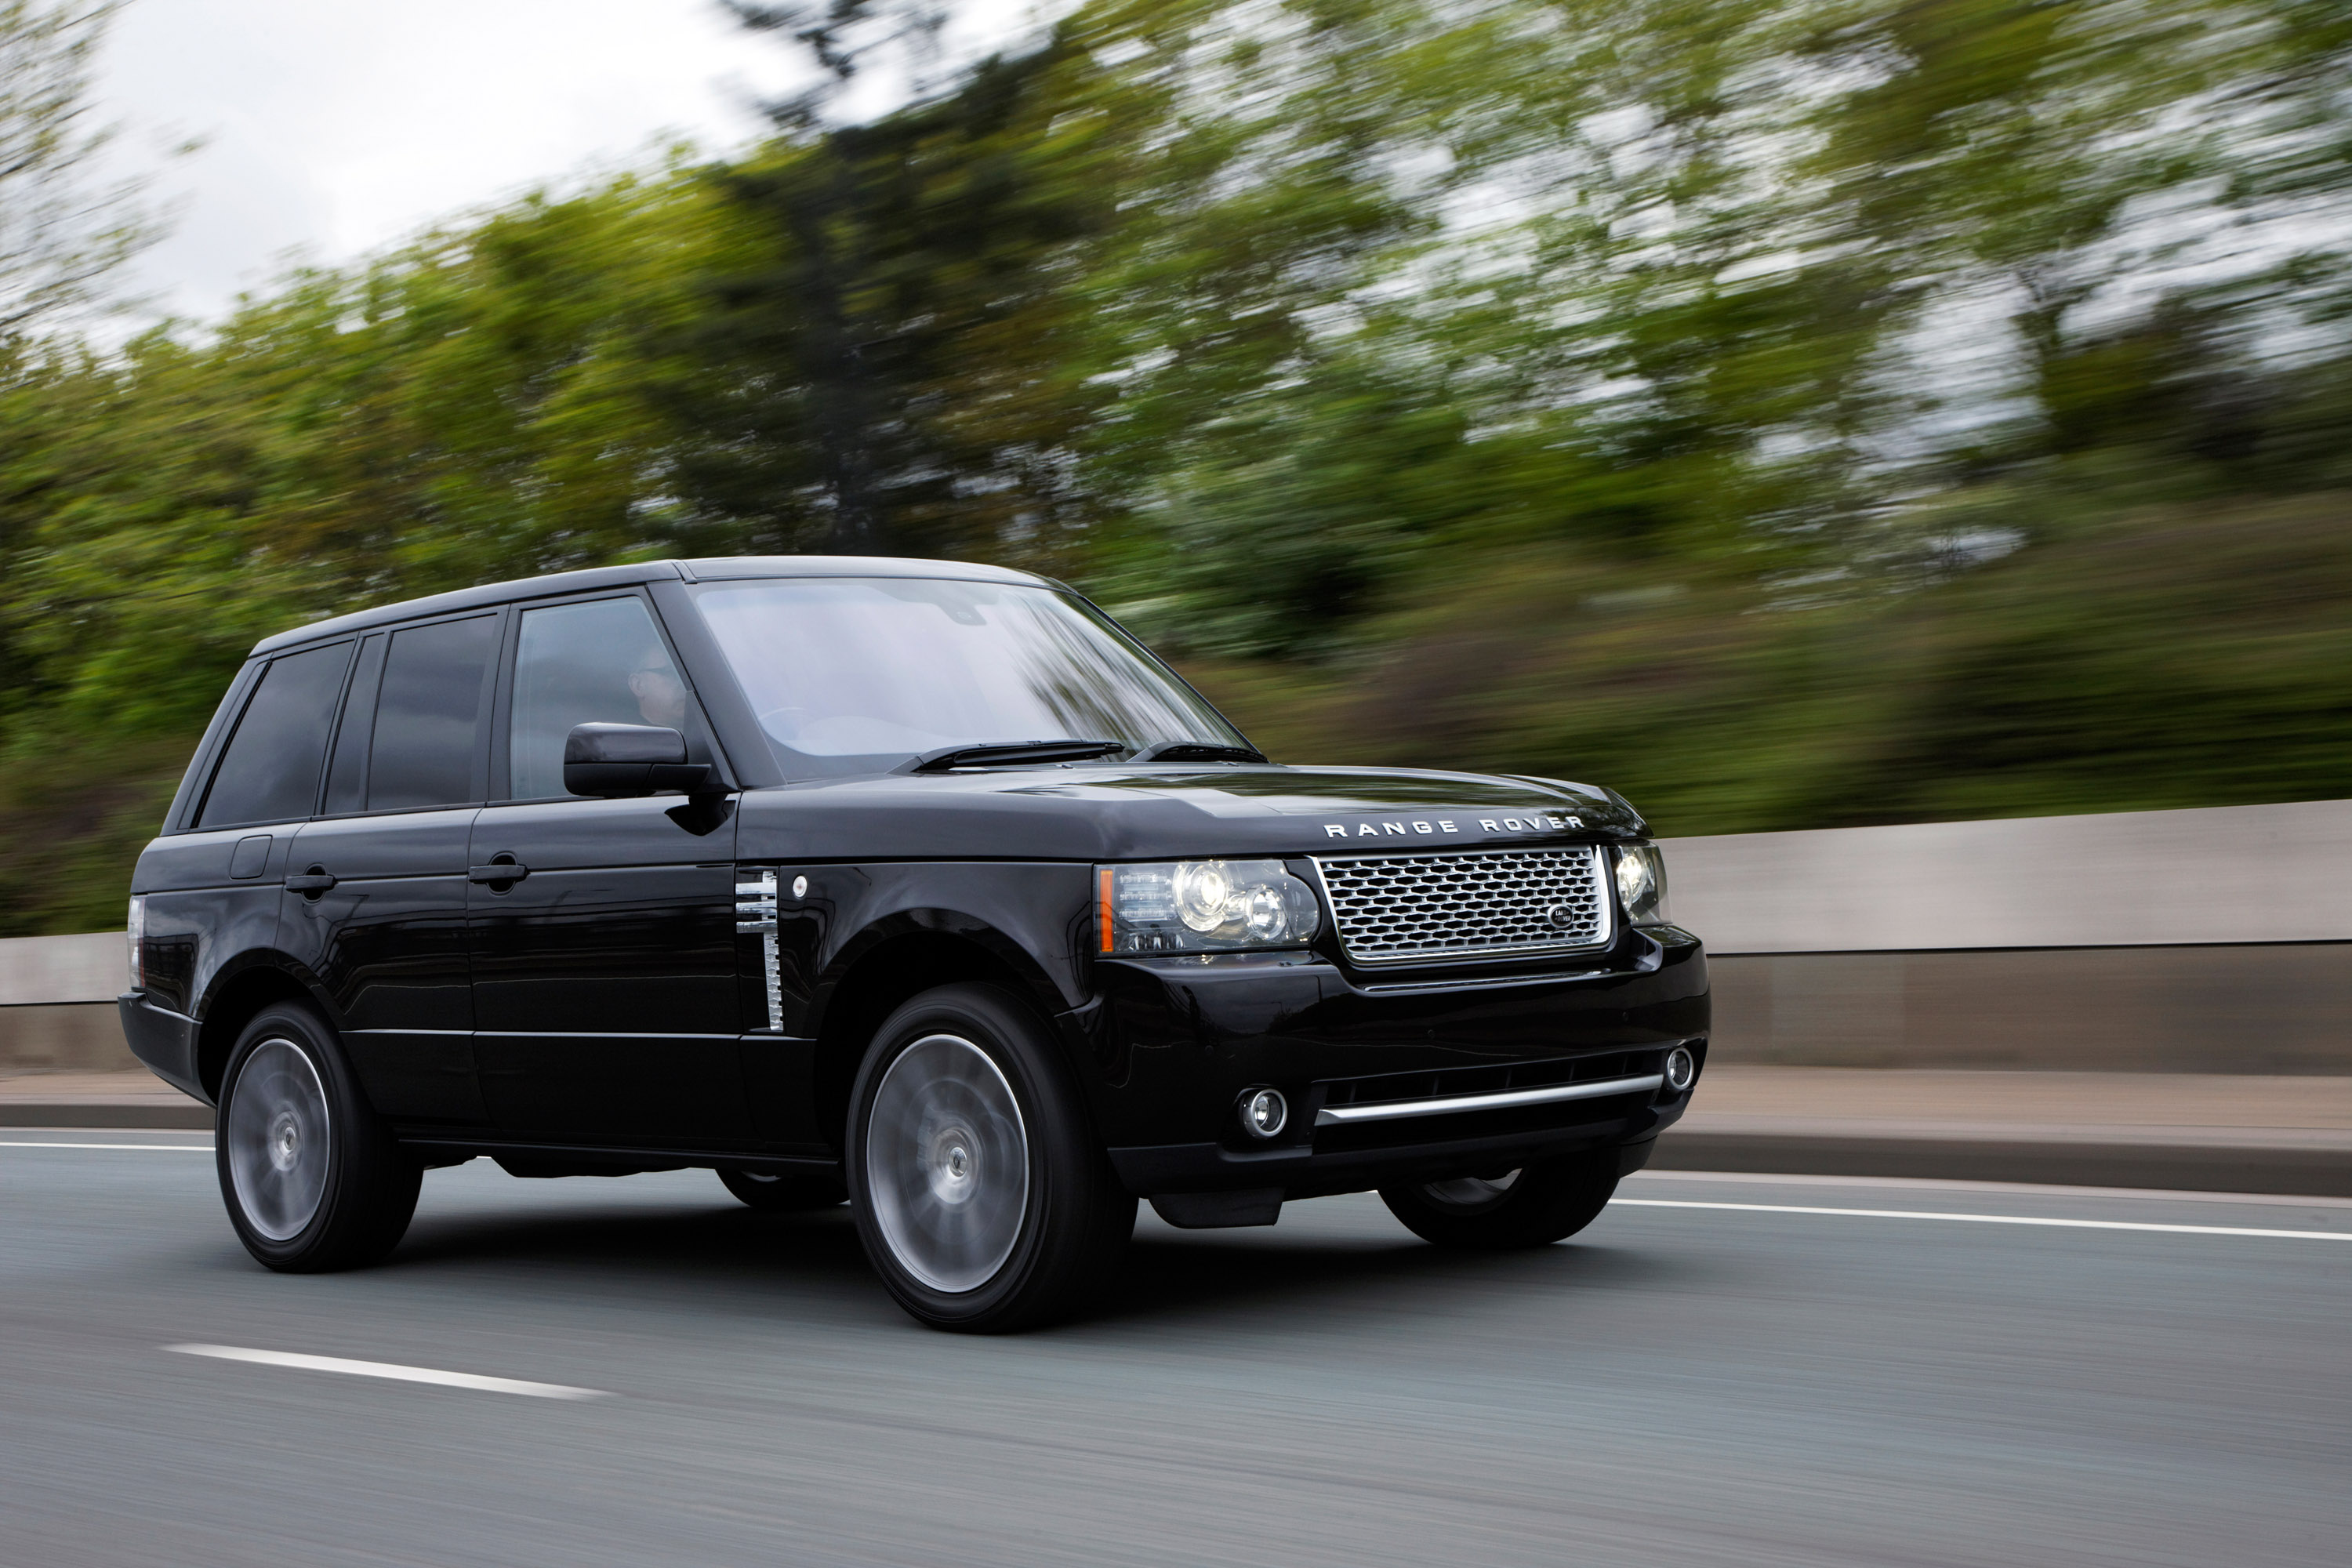 range rover autobiography black 40th anniversary limited edition. Black Bedroom Furniture Sets. Home Design Ideas